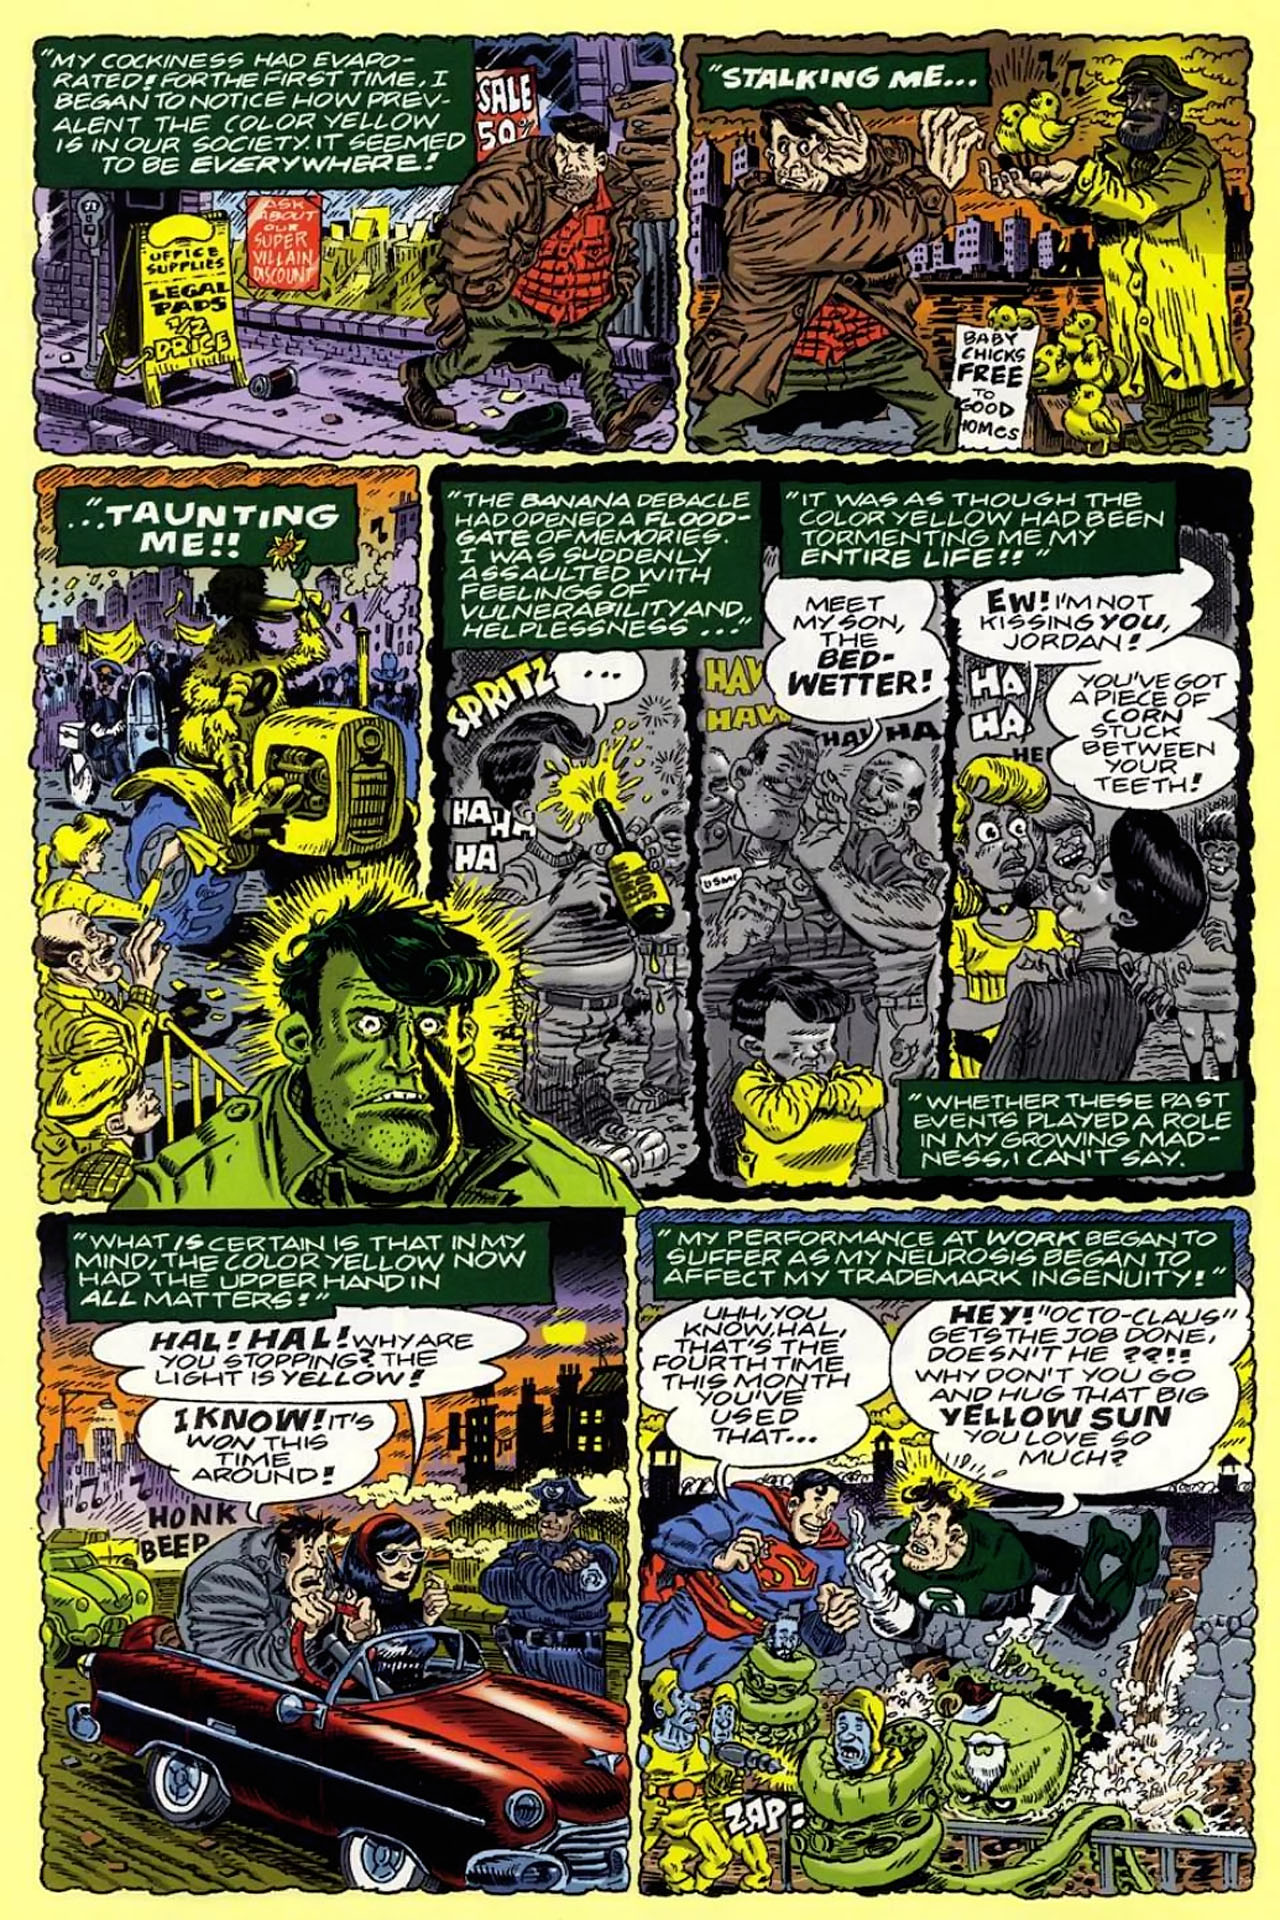 Read online Bizarro World comic -  Issue # TPB - 54